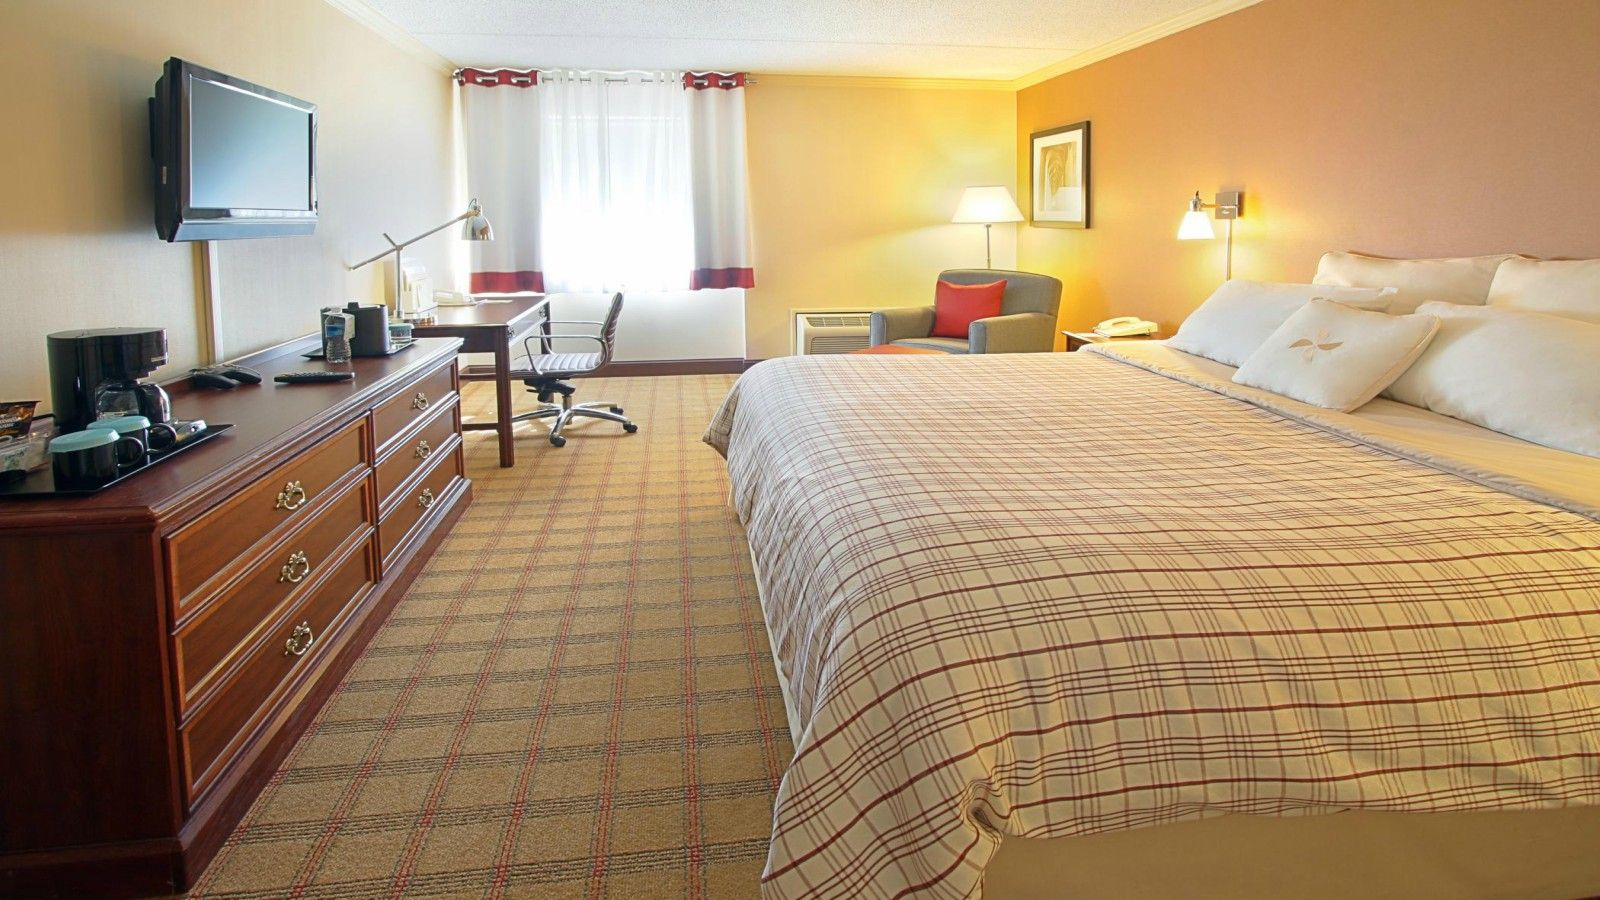 York, PA Accommodations - King Room